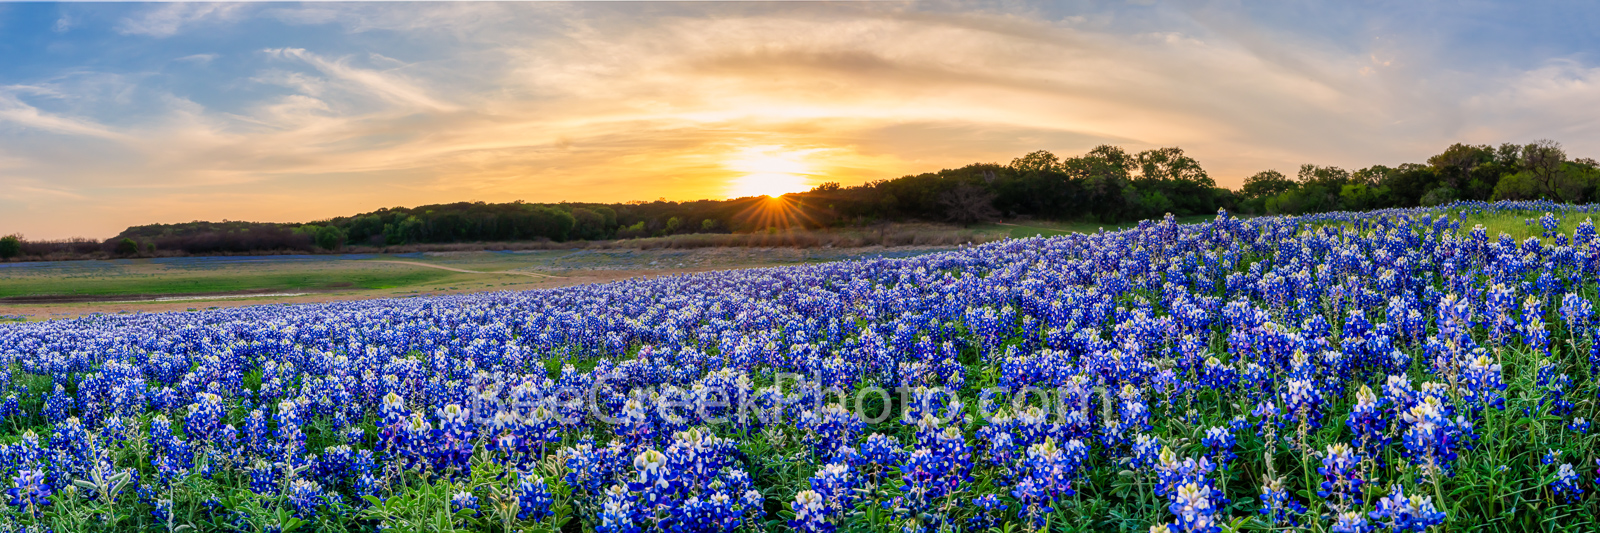 Sunset Over the Bluebonnets Pano - The Texas hill country dry river bed came back to life again after the waters went down along...